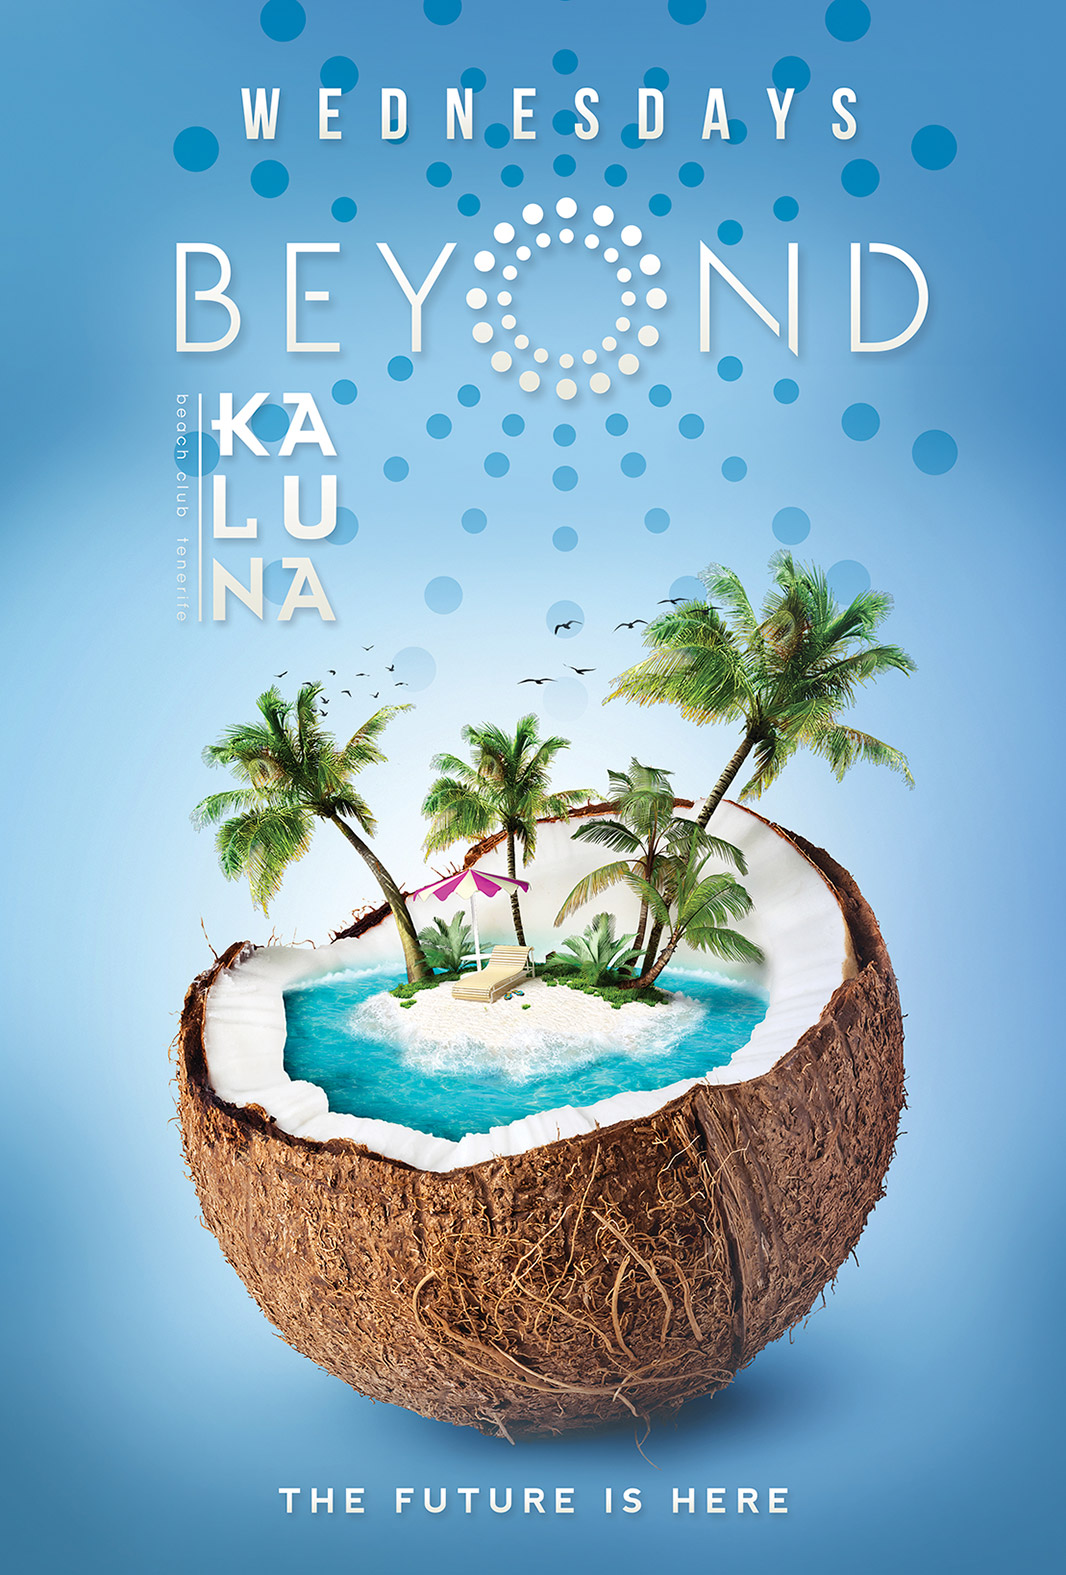 Kaluna Beach Club Tenerife - Wednesday Beyond